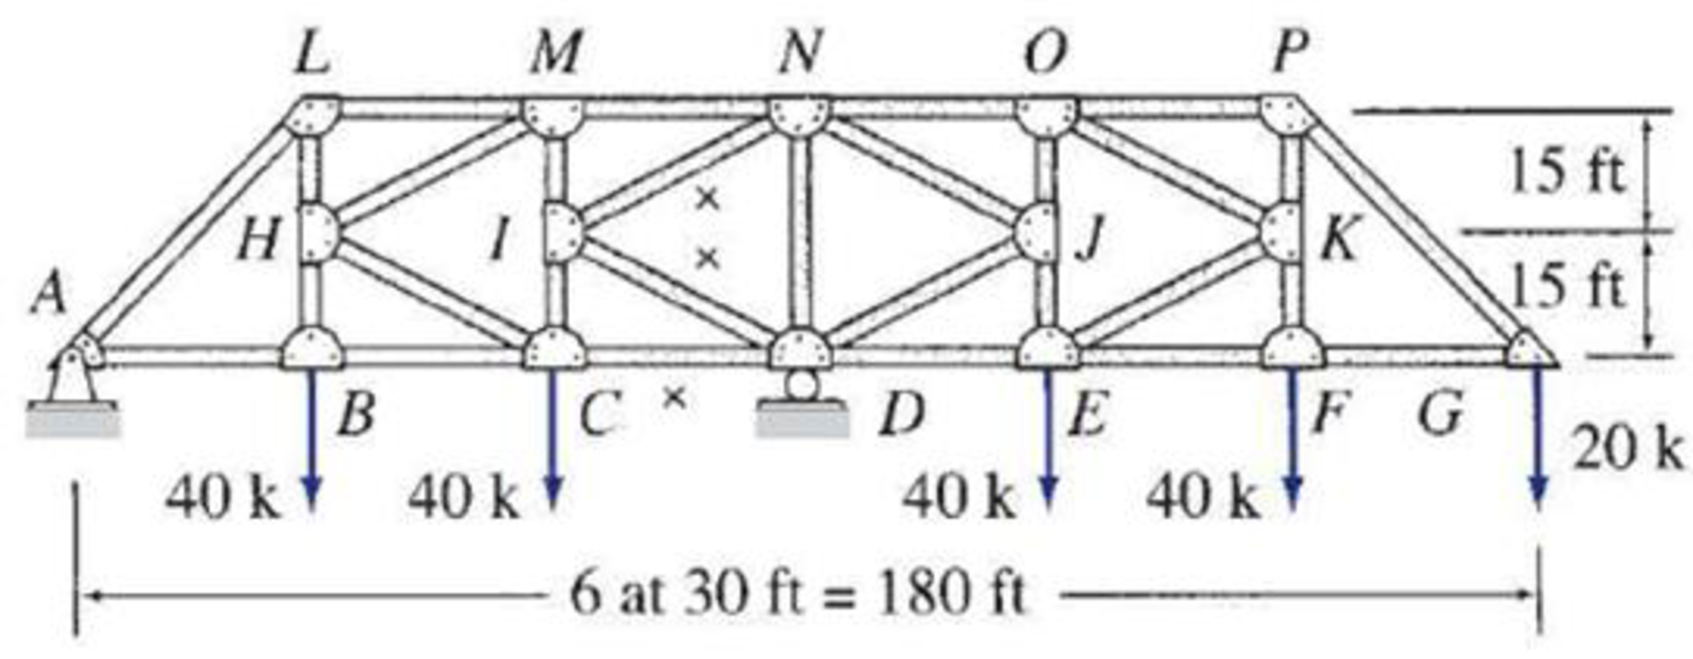 Chapter 4, Problem 45P, 4.33 through 4.45 Determine the forces in the members identified by  of the truss shown by the